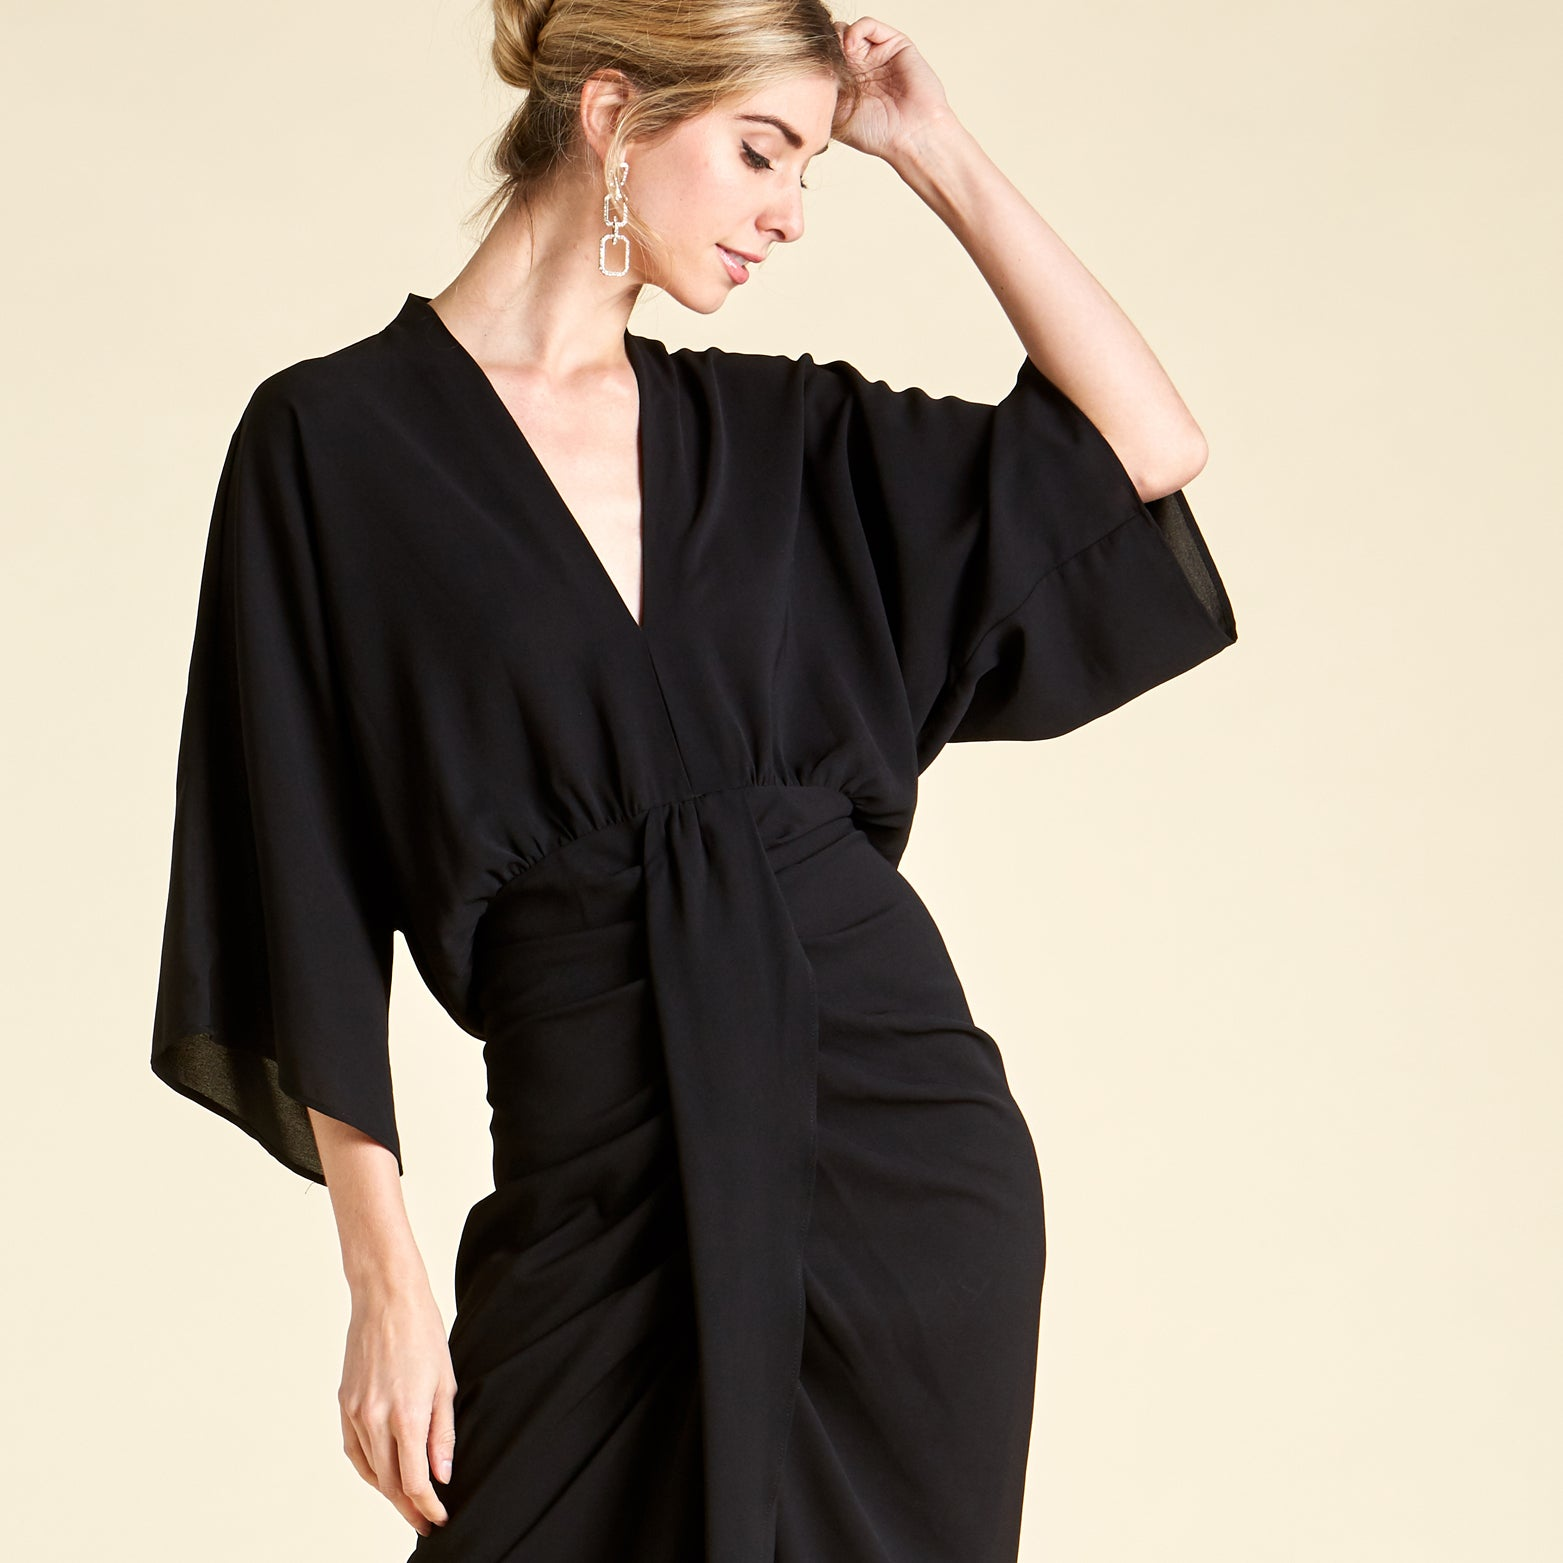 Ebony Delight Kimono Dress